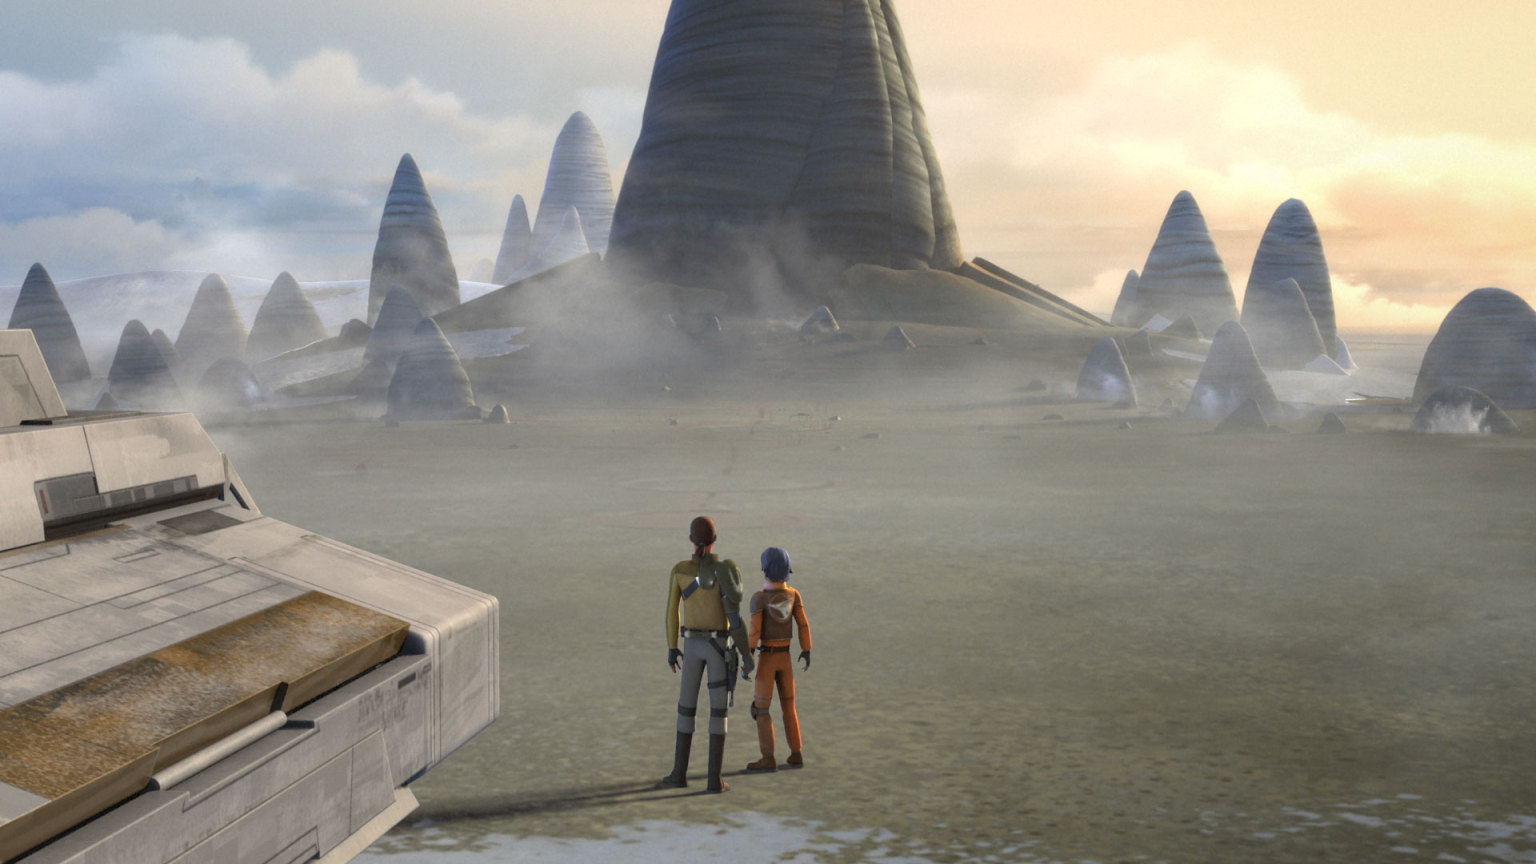 Star Wars Rebels - Path of the Jedi